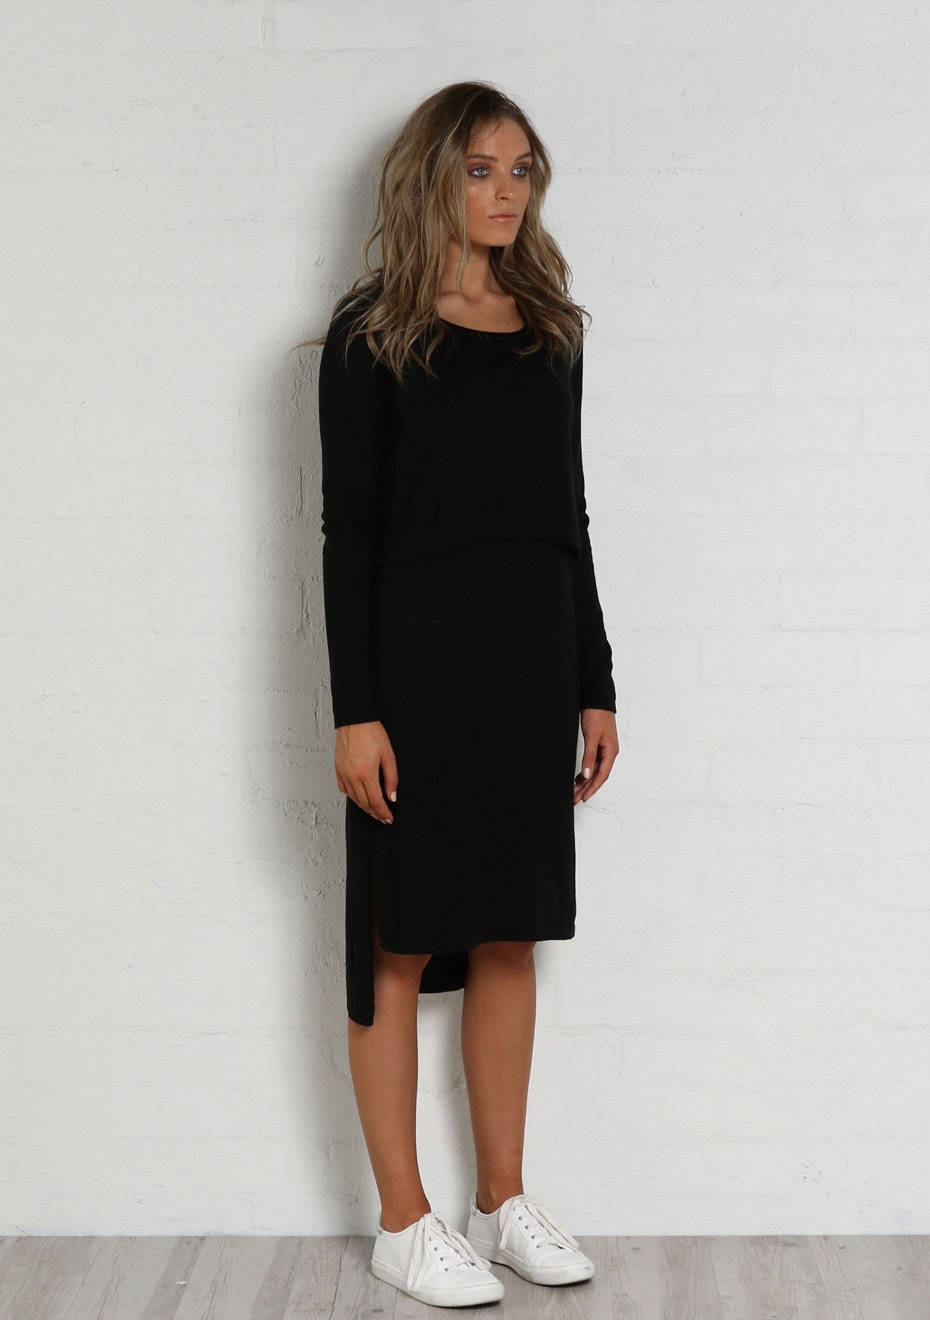 Madison - HANA DRESS - BLACK